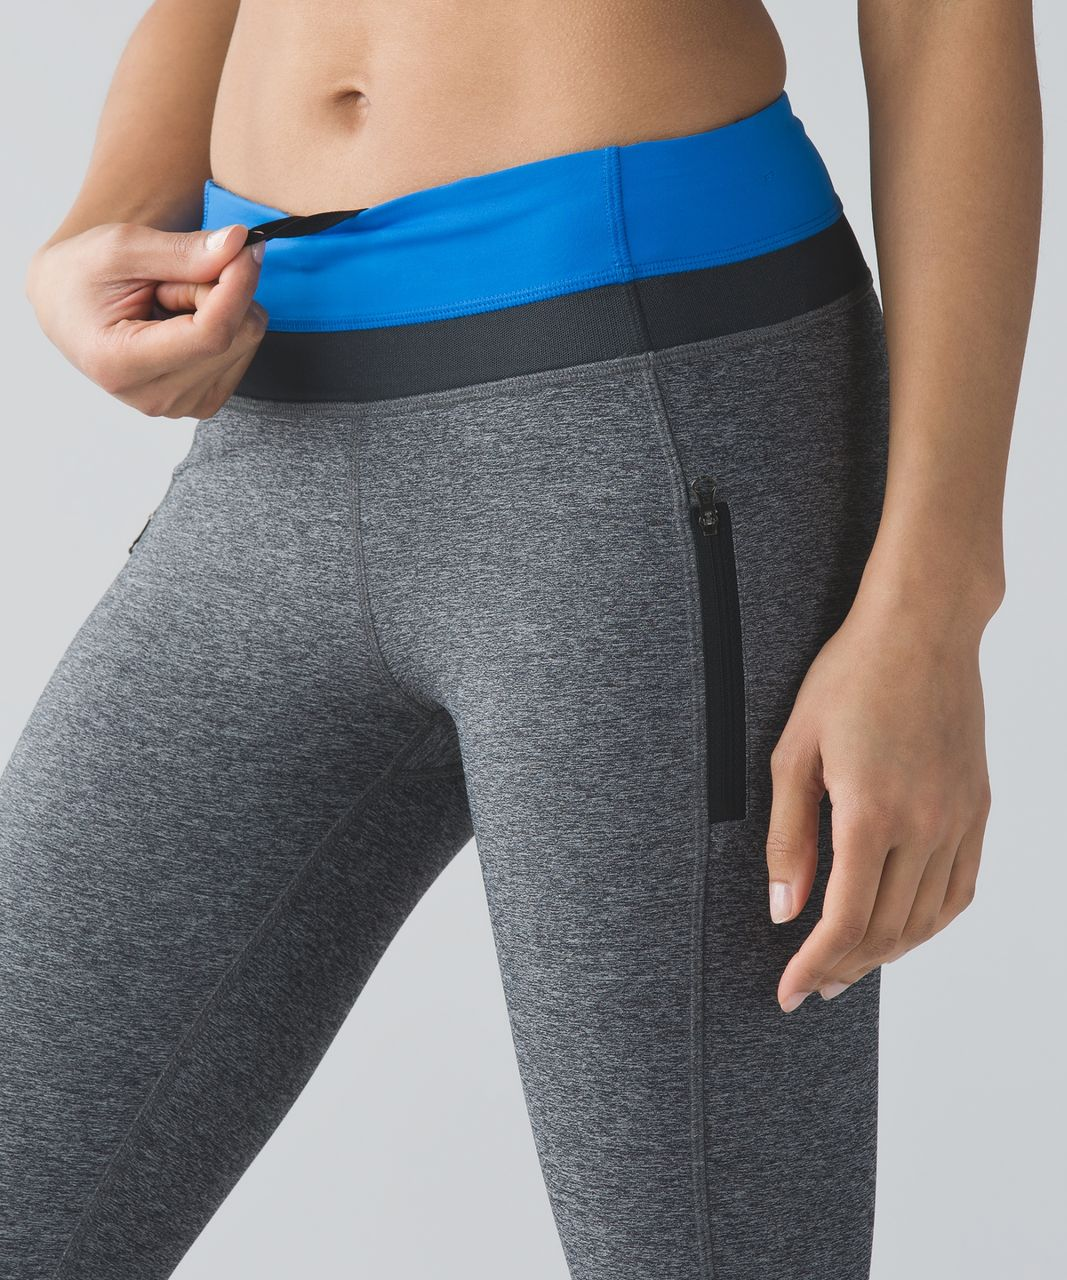 Lululemon Inspire Tight II (Mesh) - Heathered Black / Lakeside Blue / Deep Coal